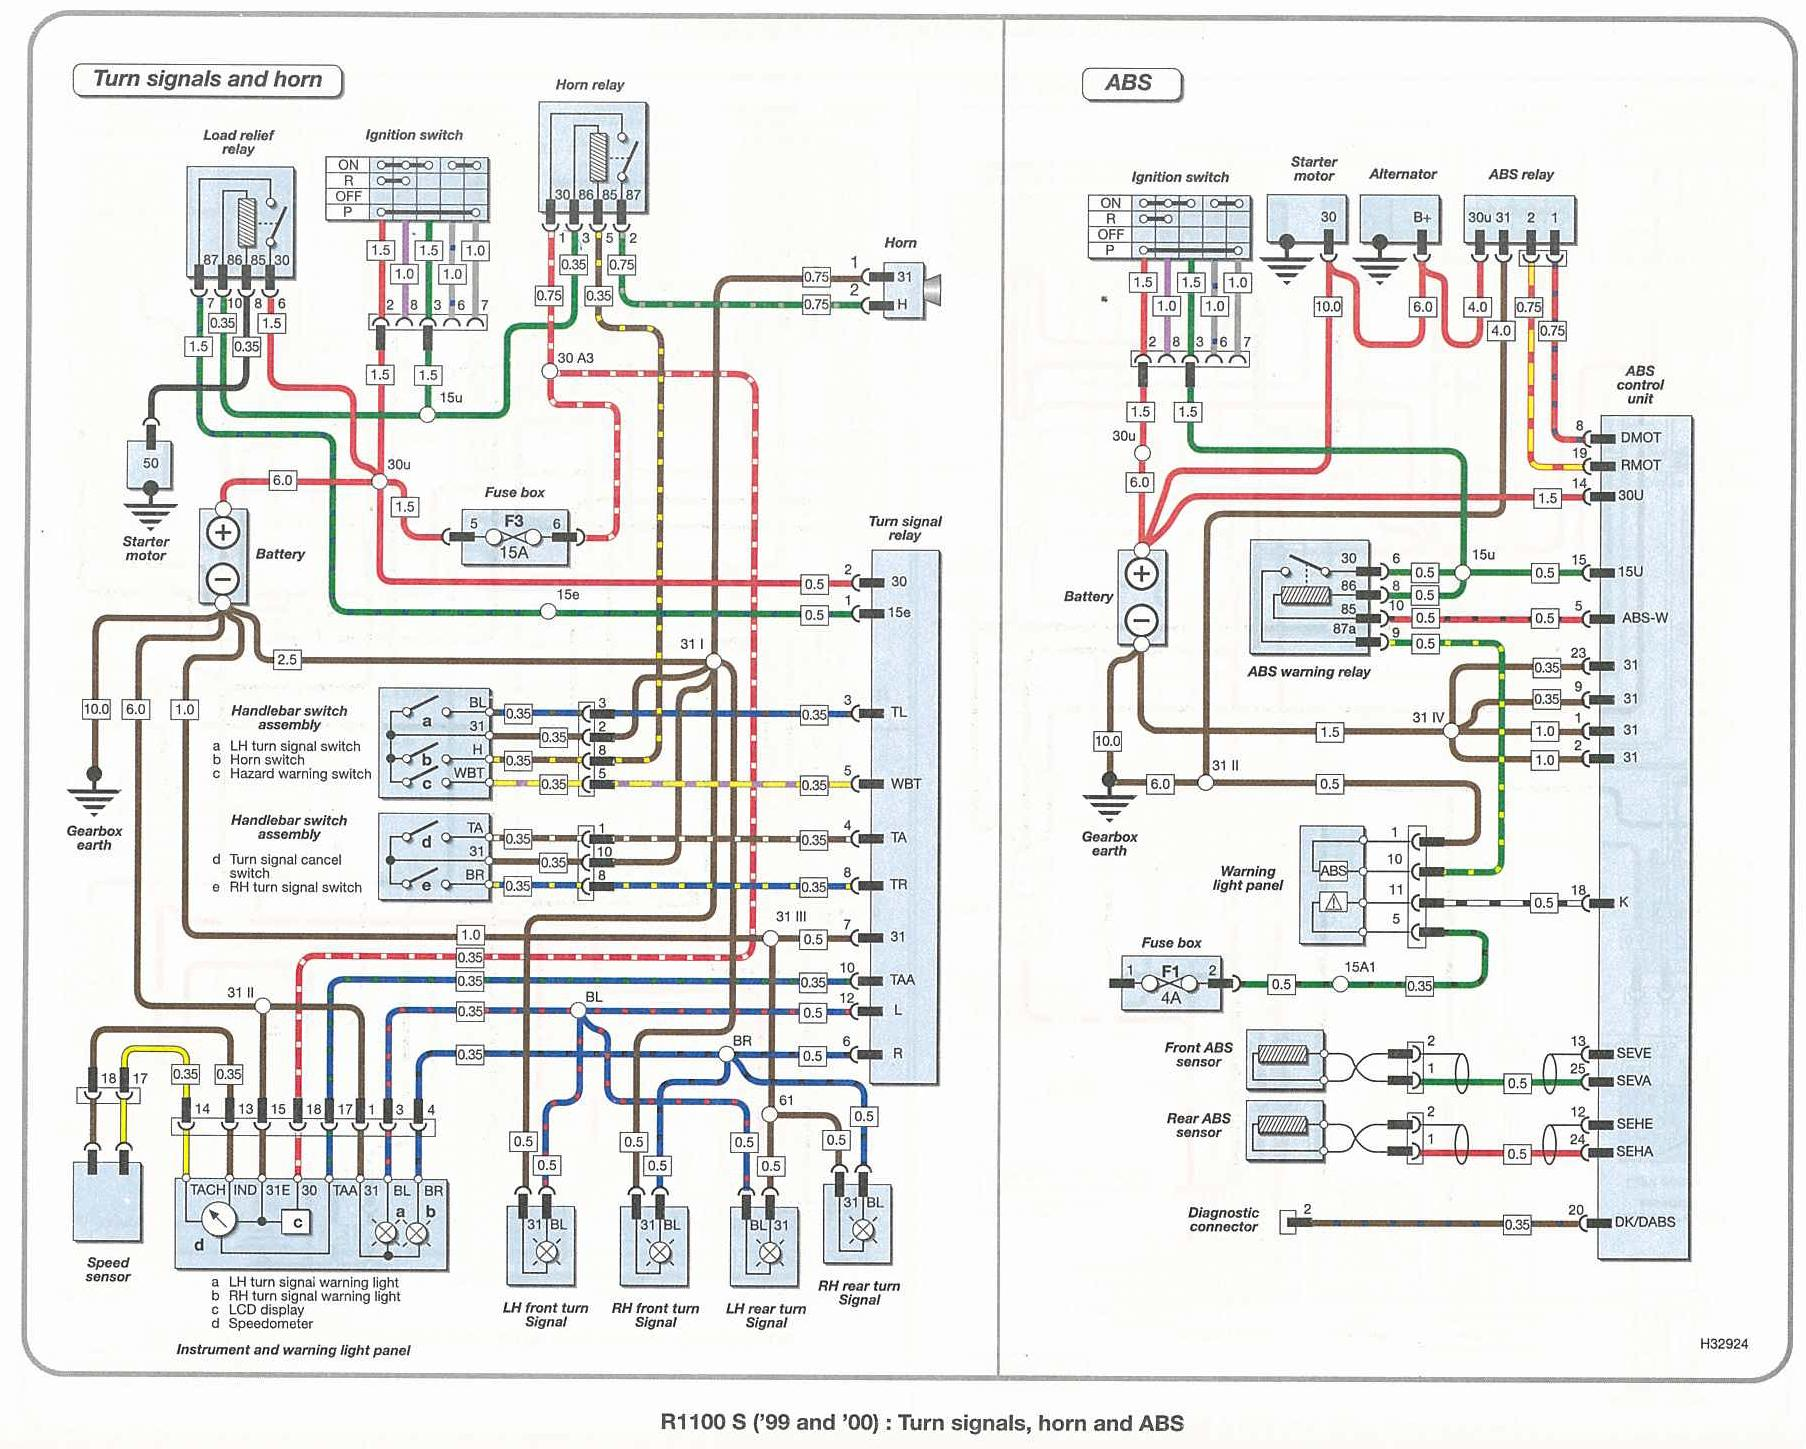 wiring03 bmw r1100s wiring diagrams bmw e60 wiring diagram pdf at reclaimingppi.co